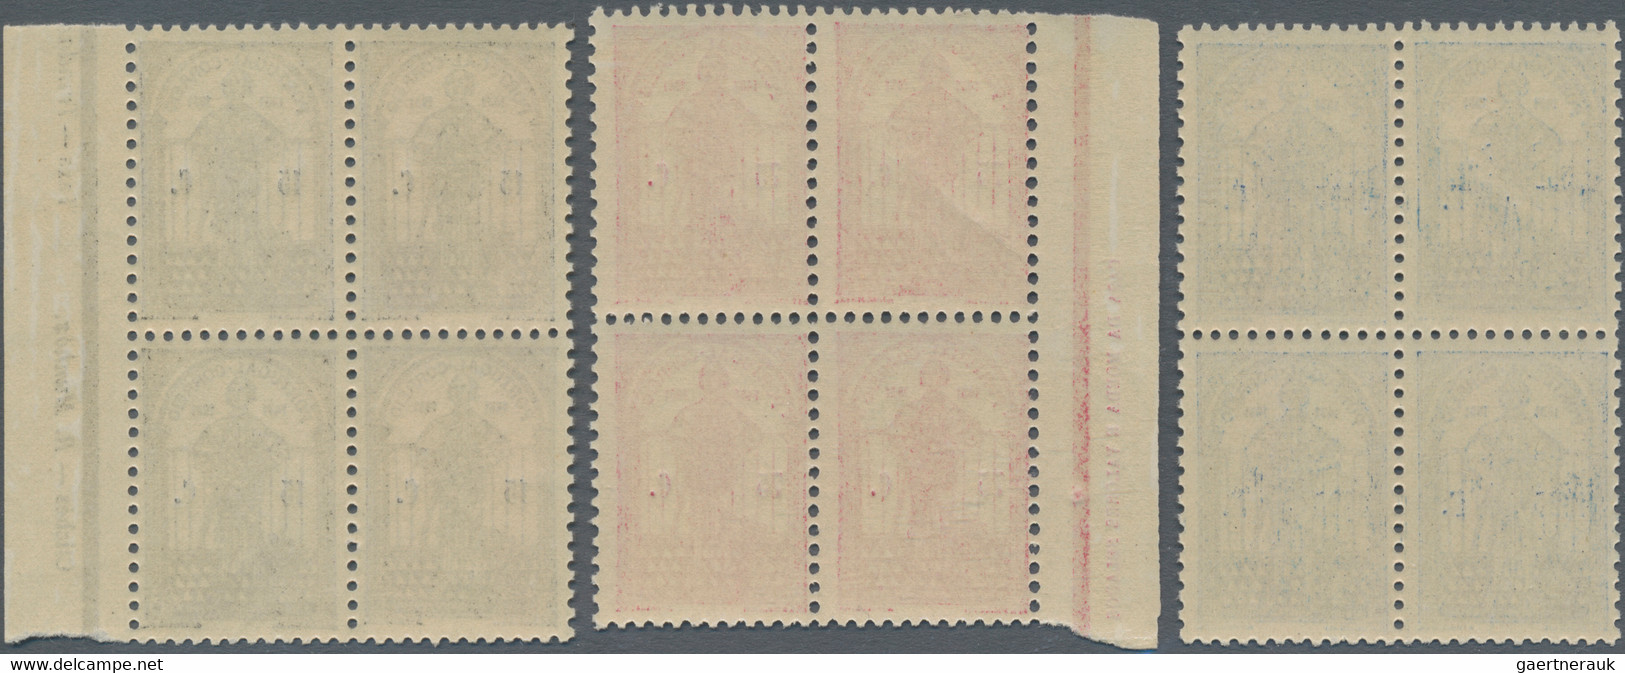 Portugal: 1931, Dum Nuno Álavrez, Complete Set Of Six Stamps, Each In Blocks Of Four, Five With A Ma - Nuevos